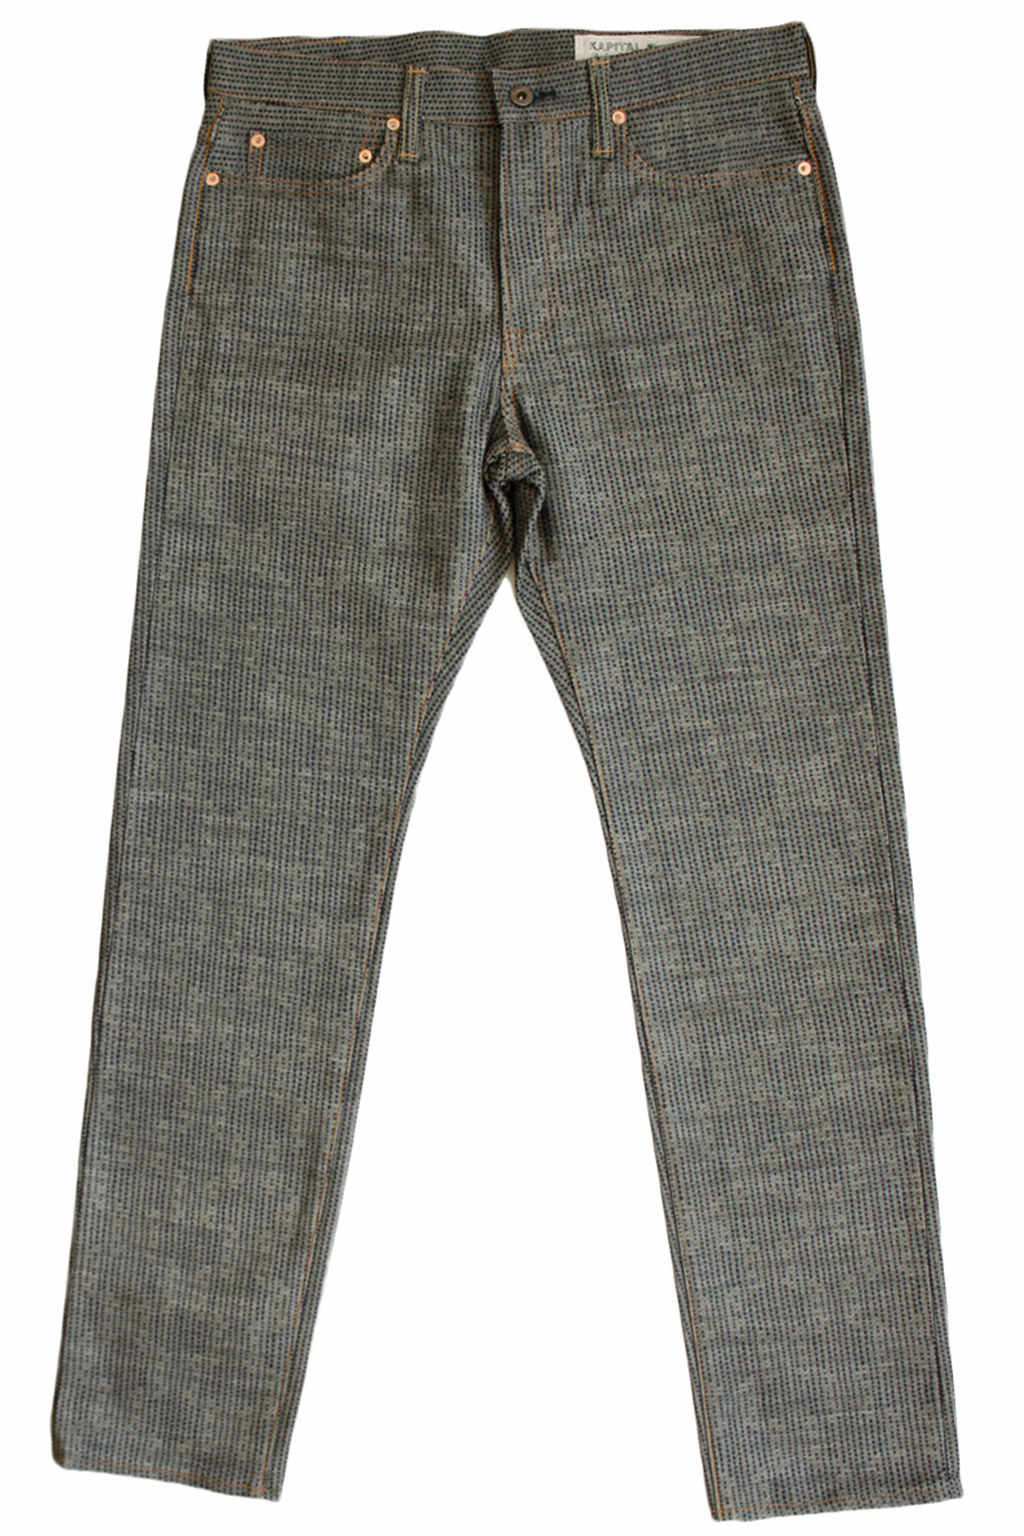 Century Denim 5P Stone N7S - Grey